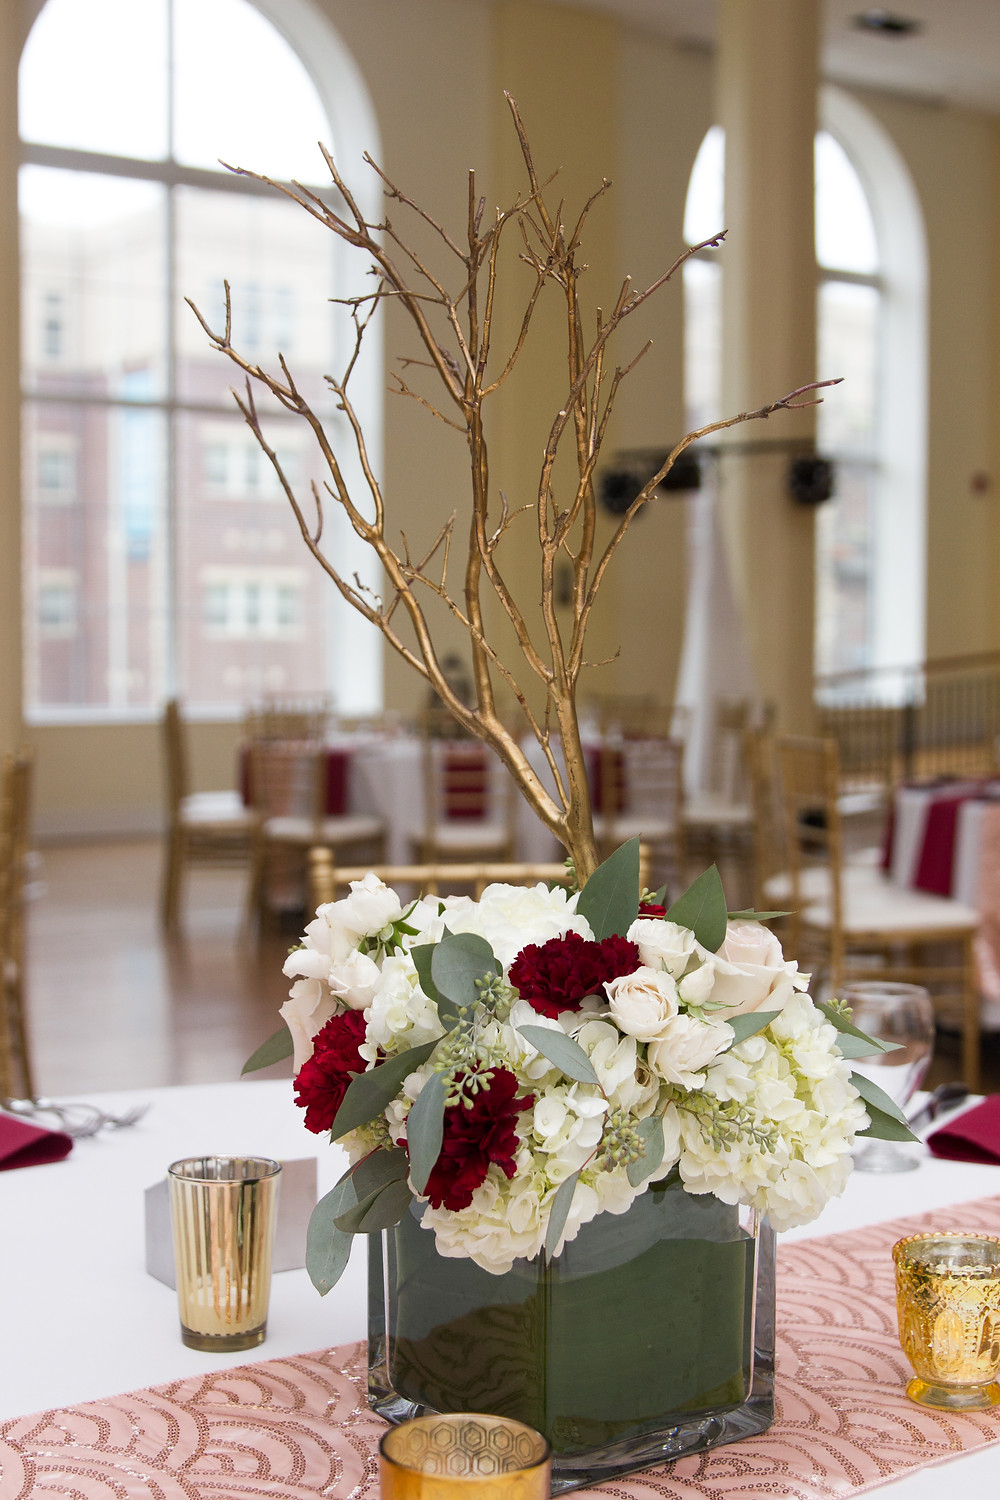 wedding, reception, tablescape, manzanita branches, gold, floral arrangements, burgundy, white, light pink, seeded eucalyptus, wedding day, columbia, mo, blue diamond events photography, fall colors, Kimball Ballroom, Stephens College, fall decor, blue diamond events coordinating, day of coordinating